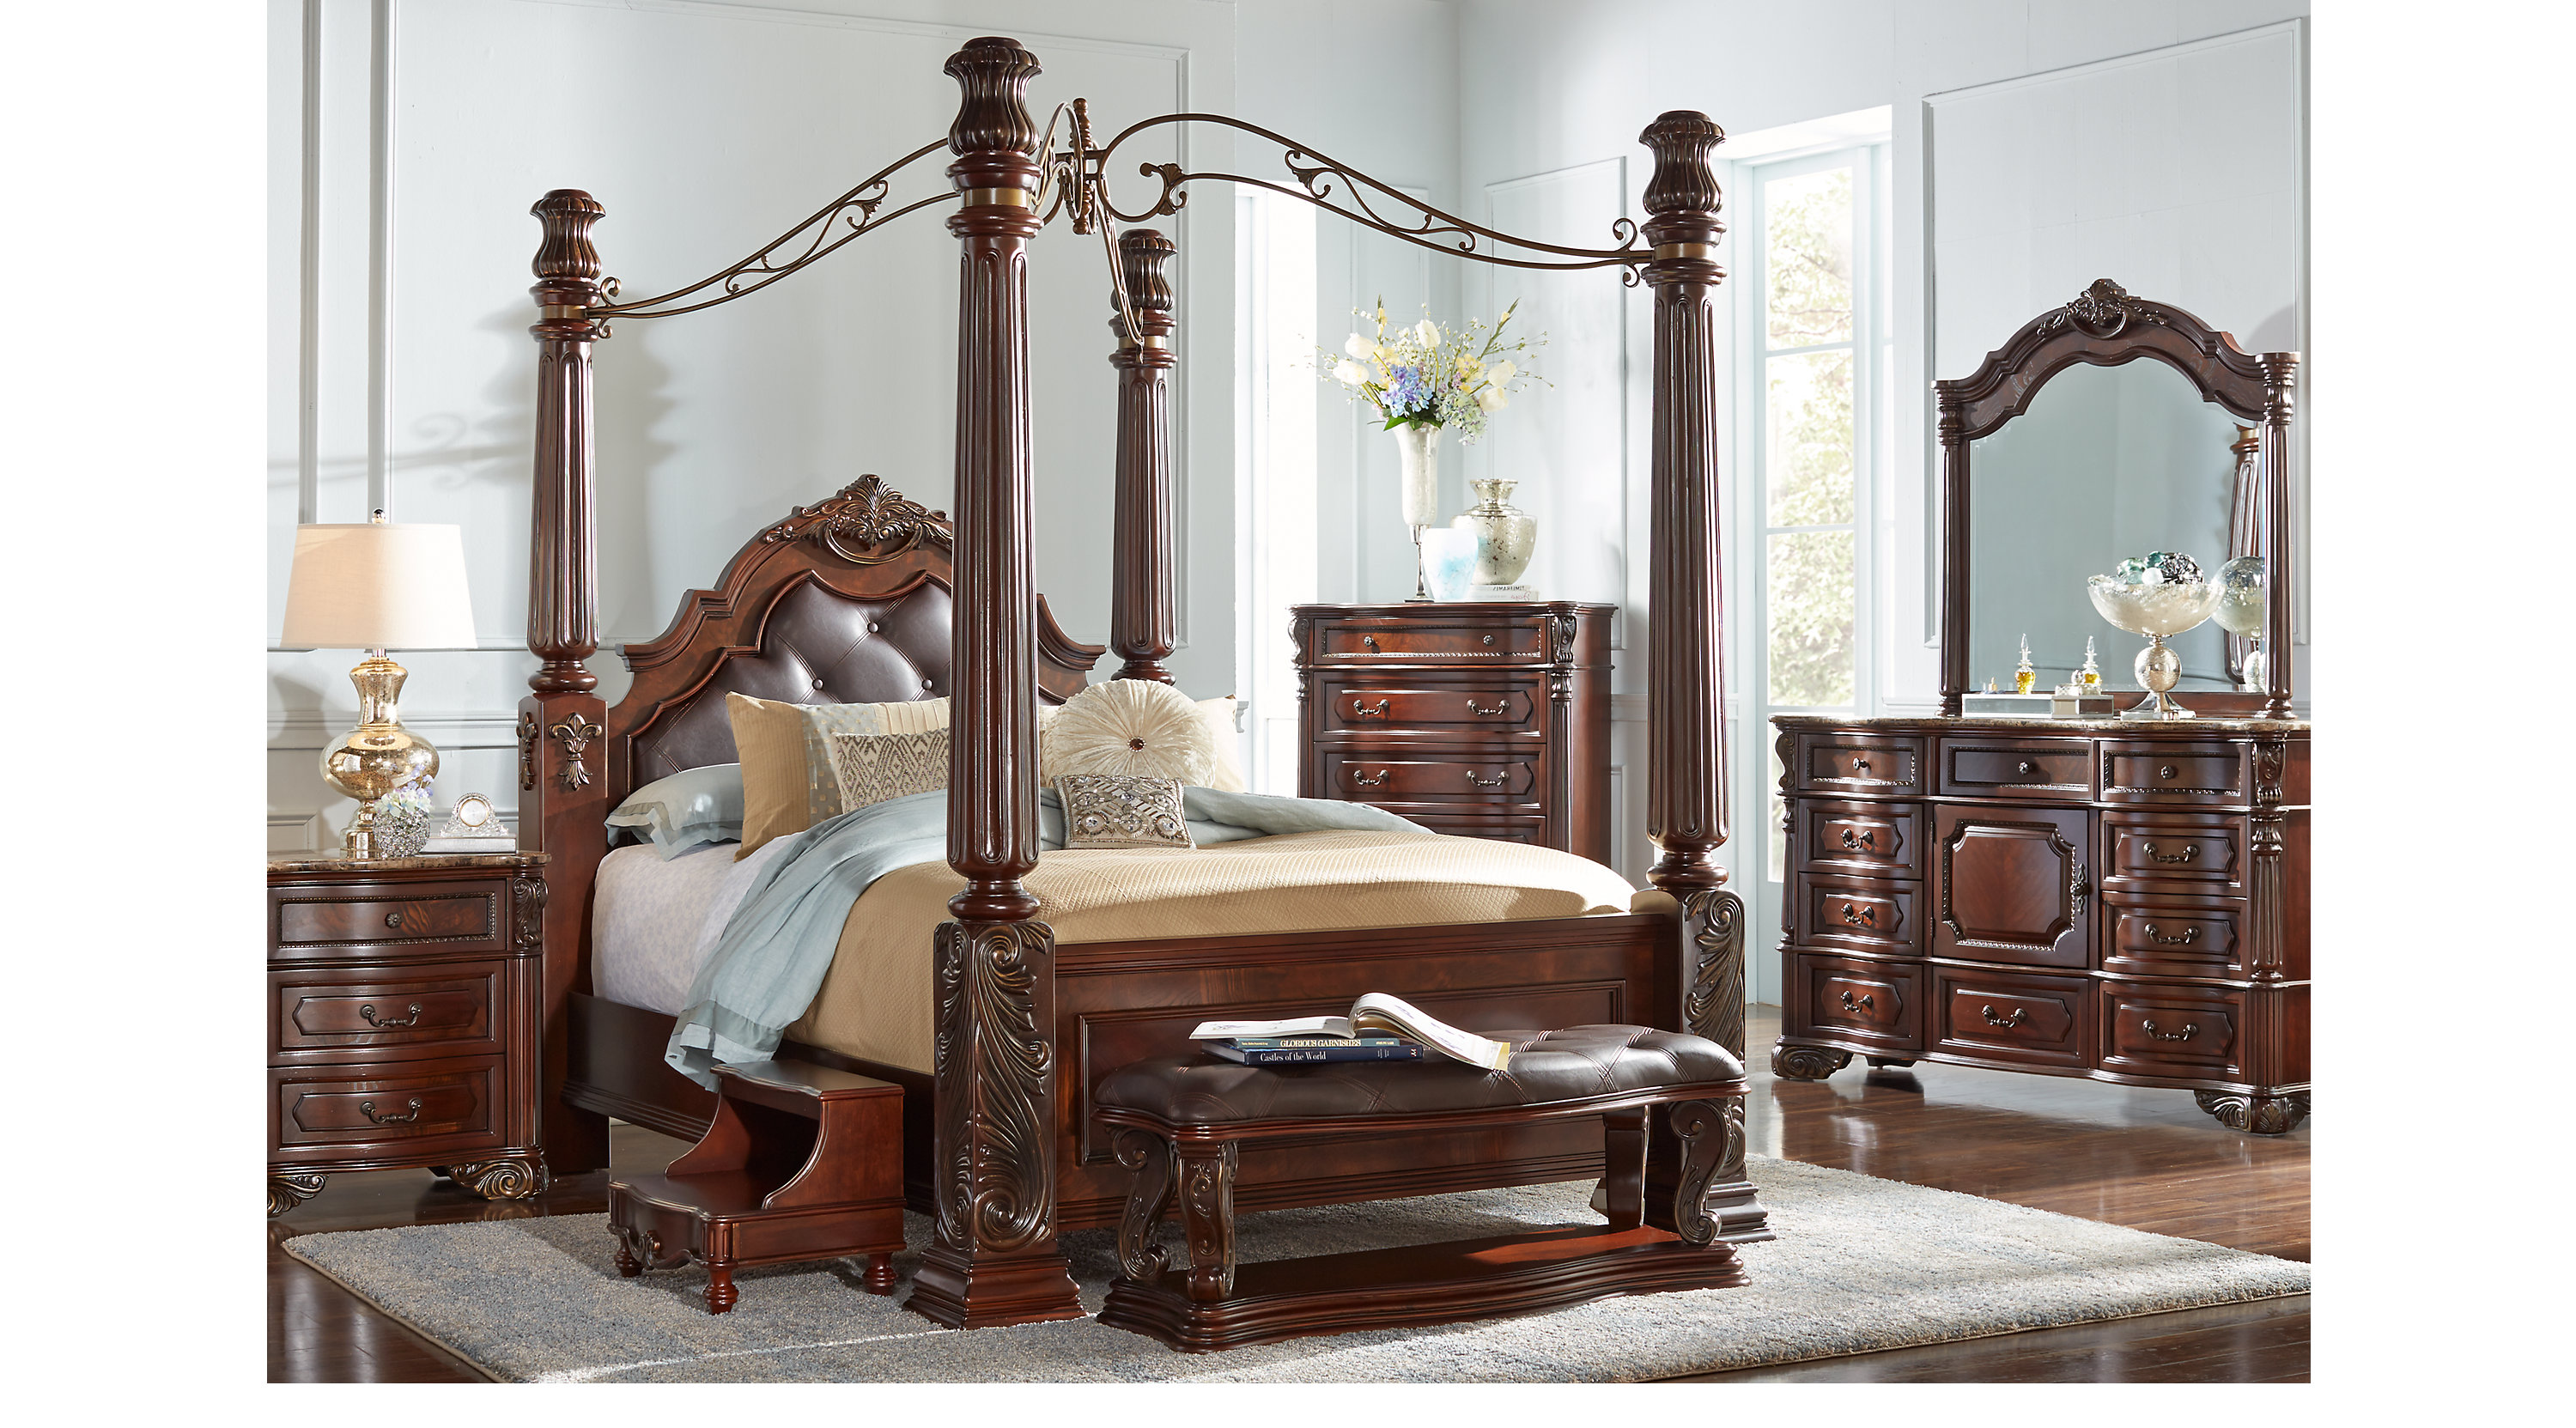 Southampton Walnut dark brown 6 Pc Queen Canopy Bedroom Traditional